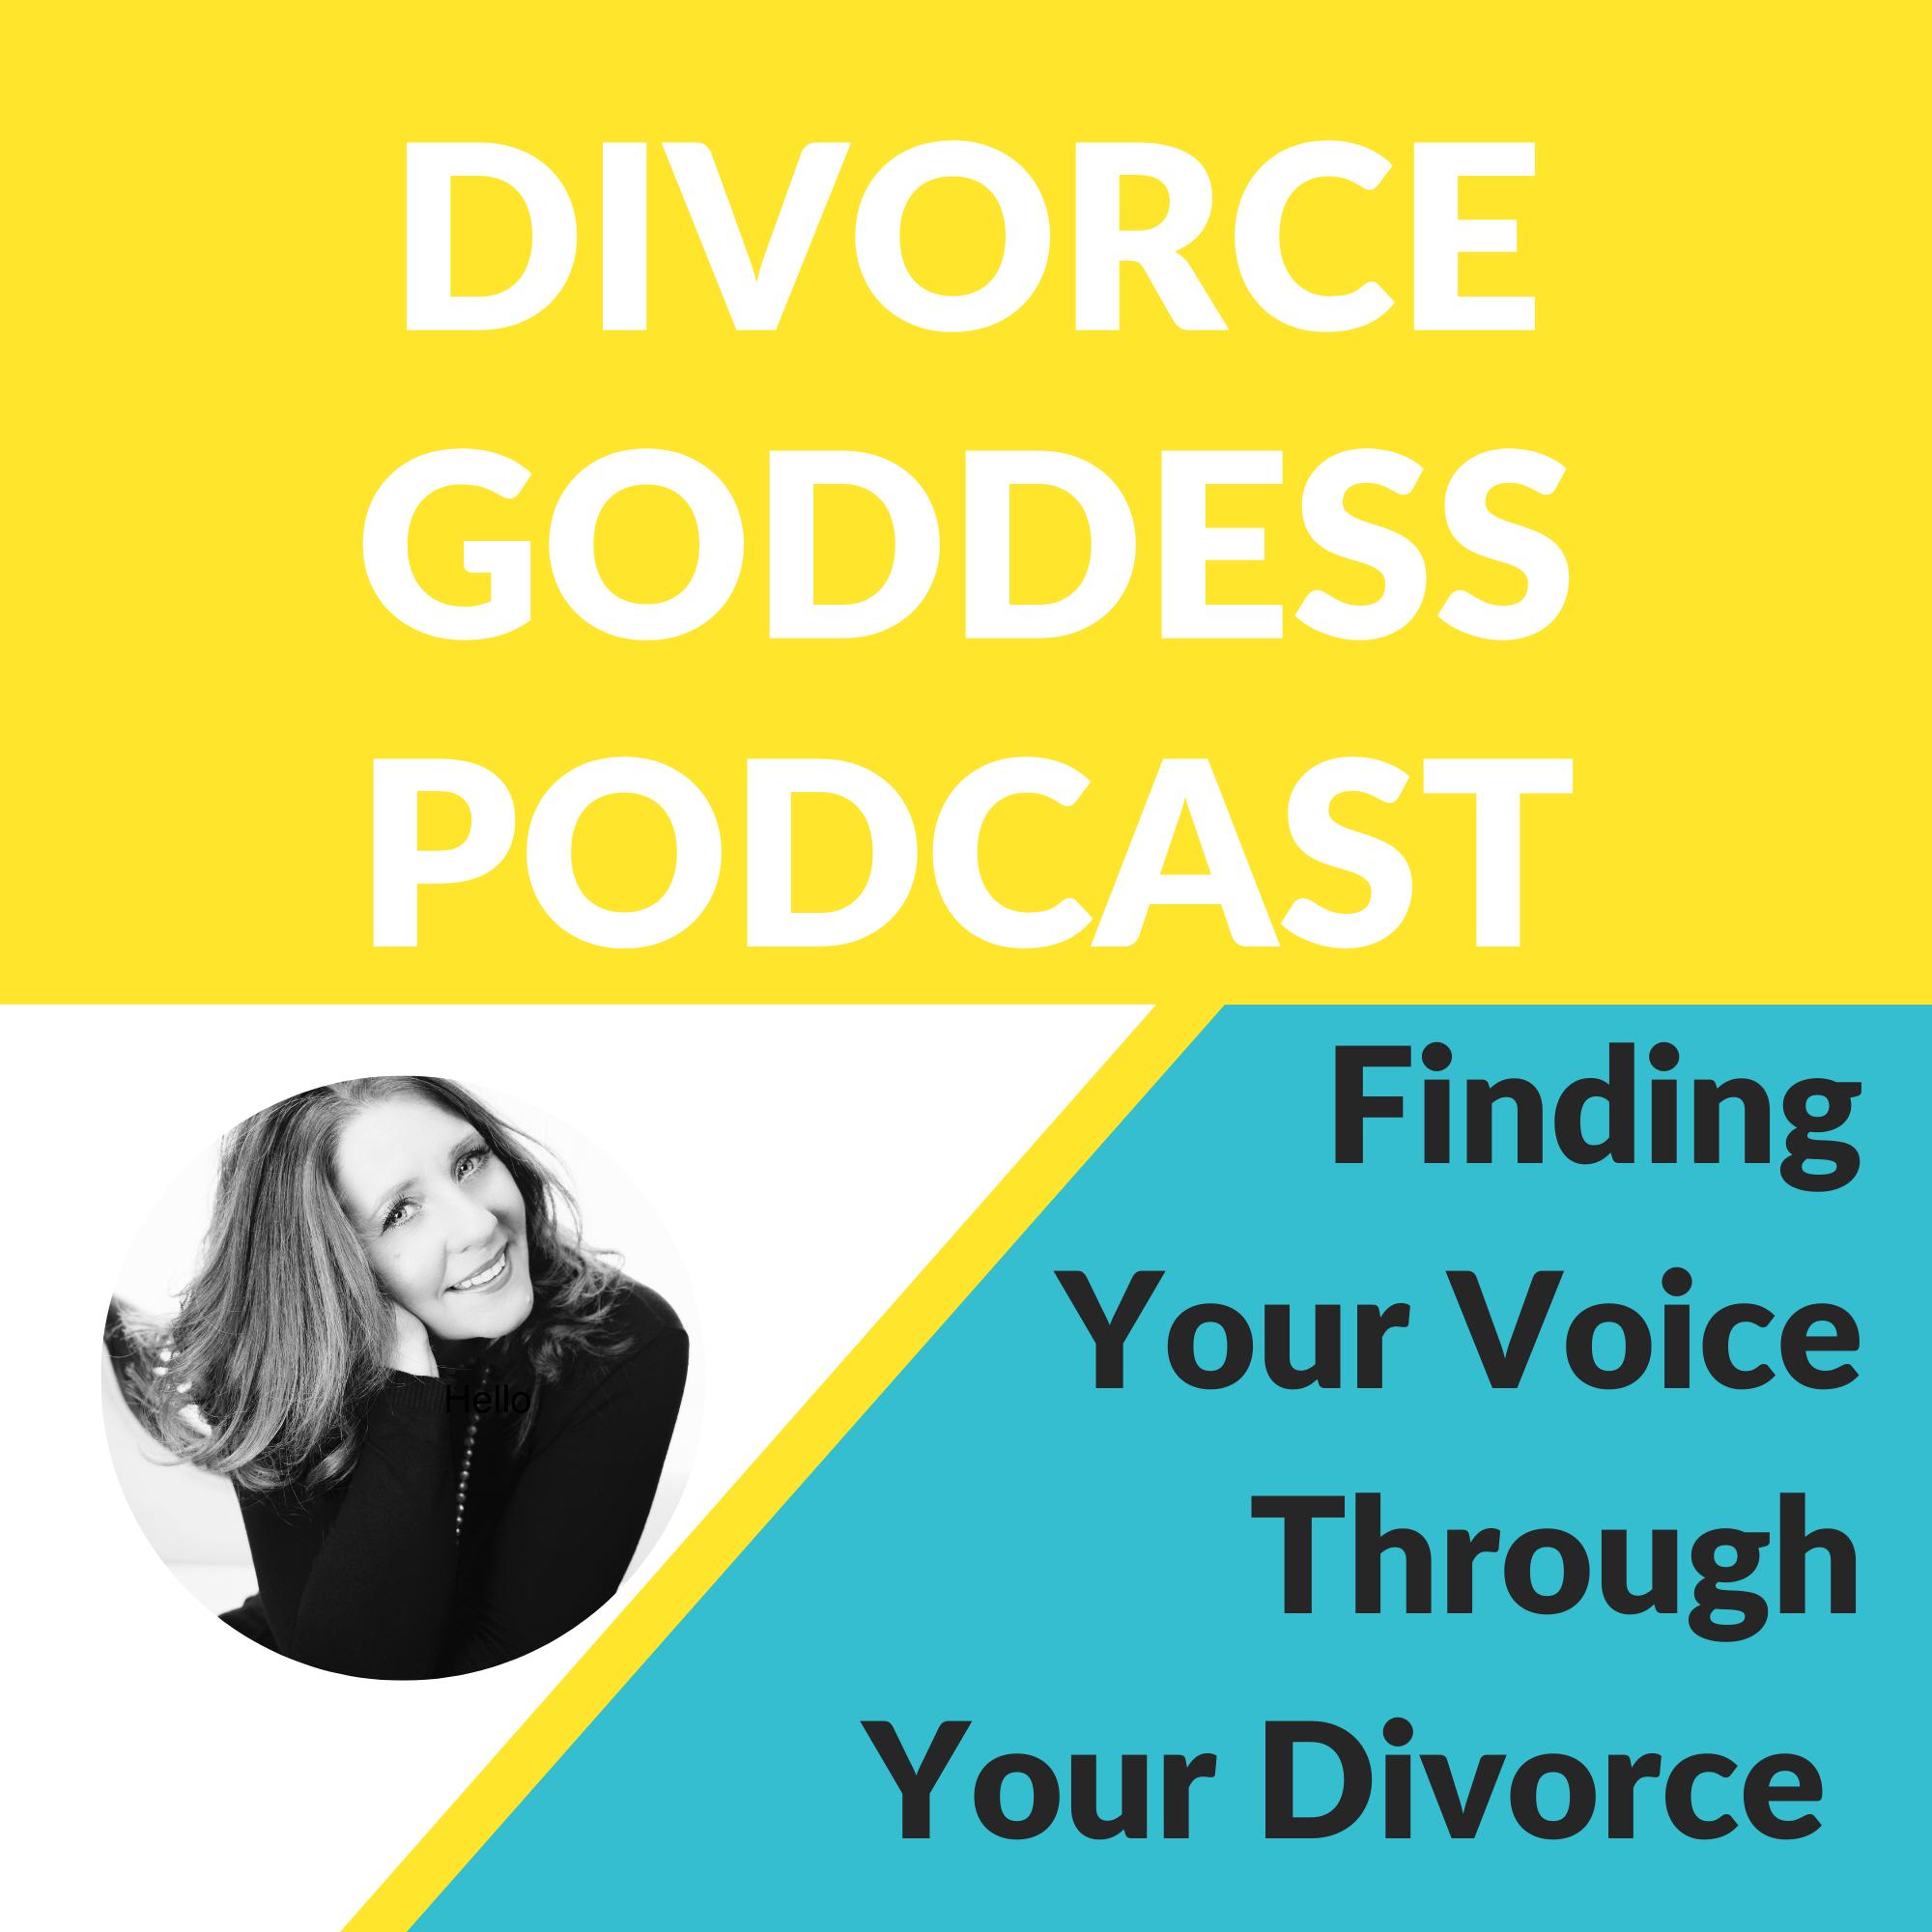 Divorce Goddess Podcast - Finding Your Voice Through Your Divorce